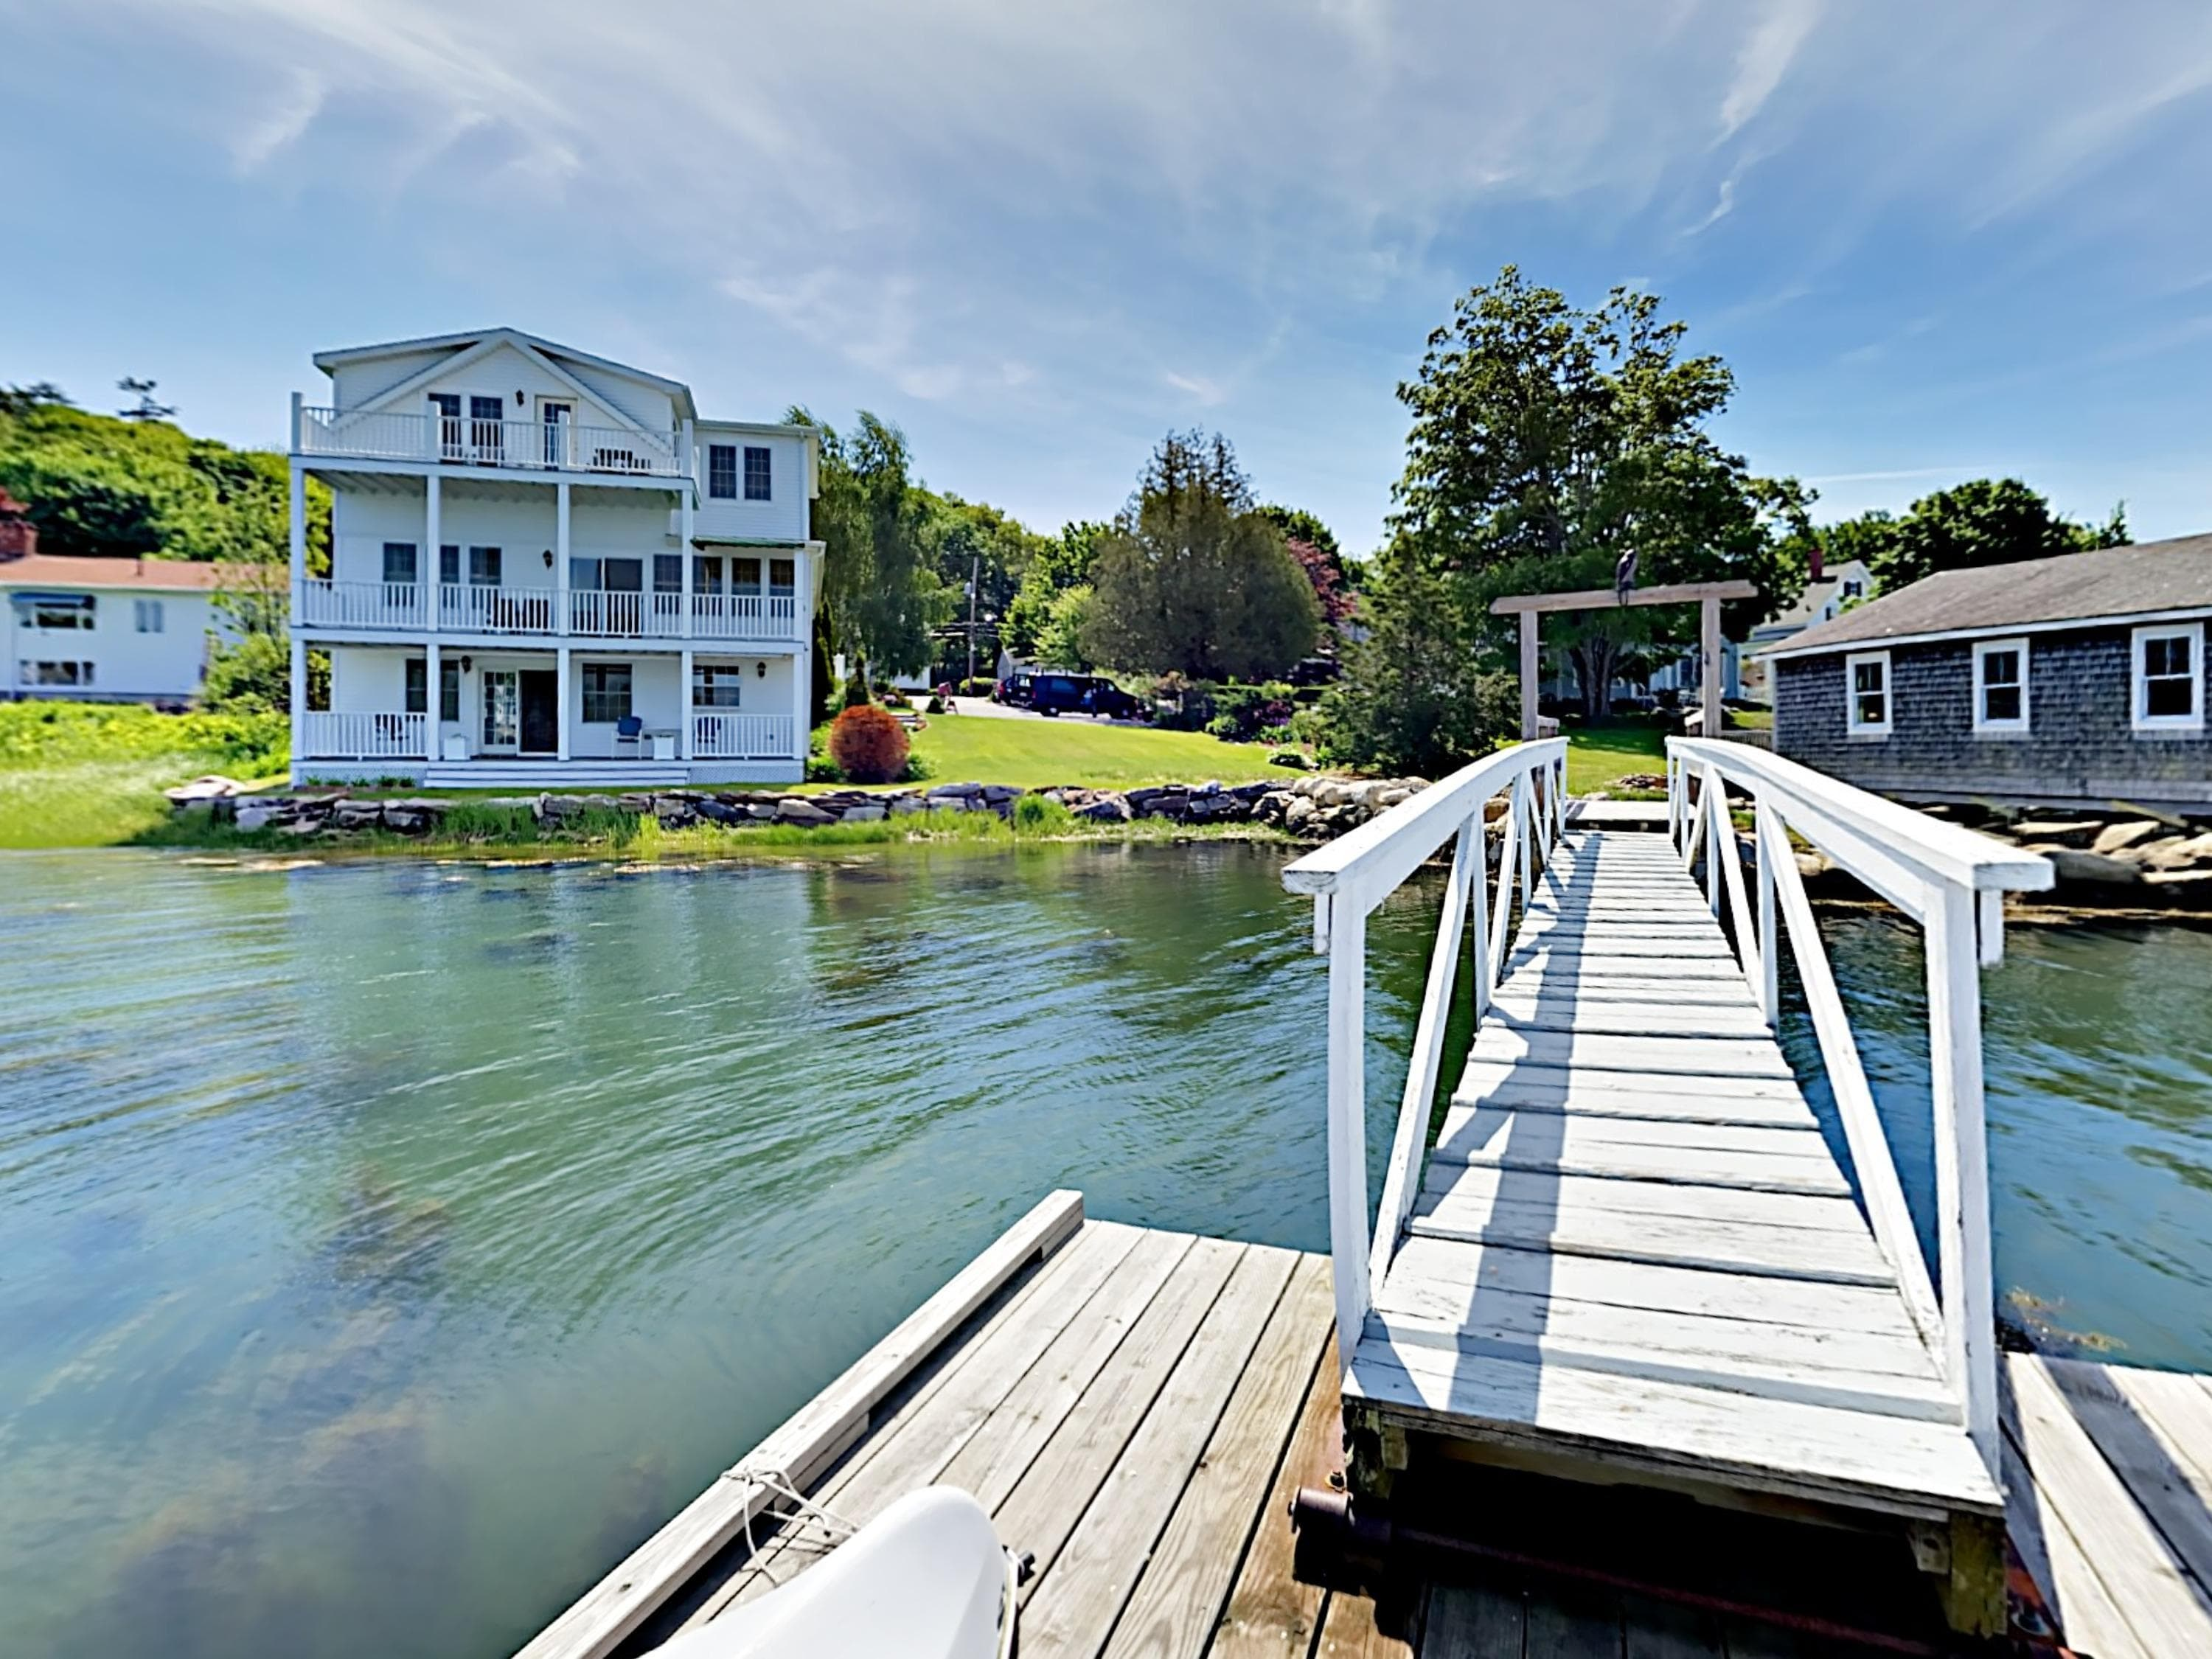 Your private dock provides unparalleled access to the harbor.